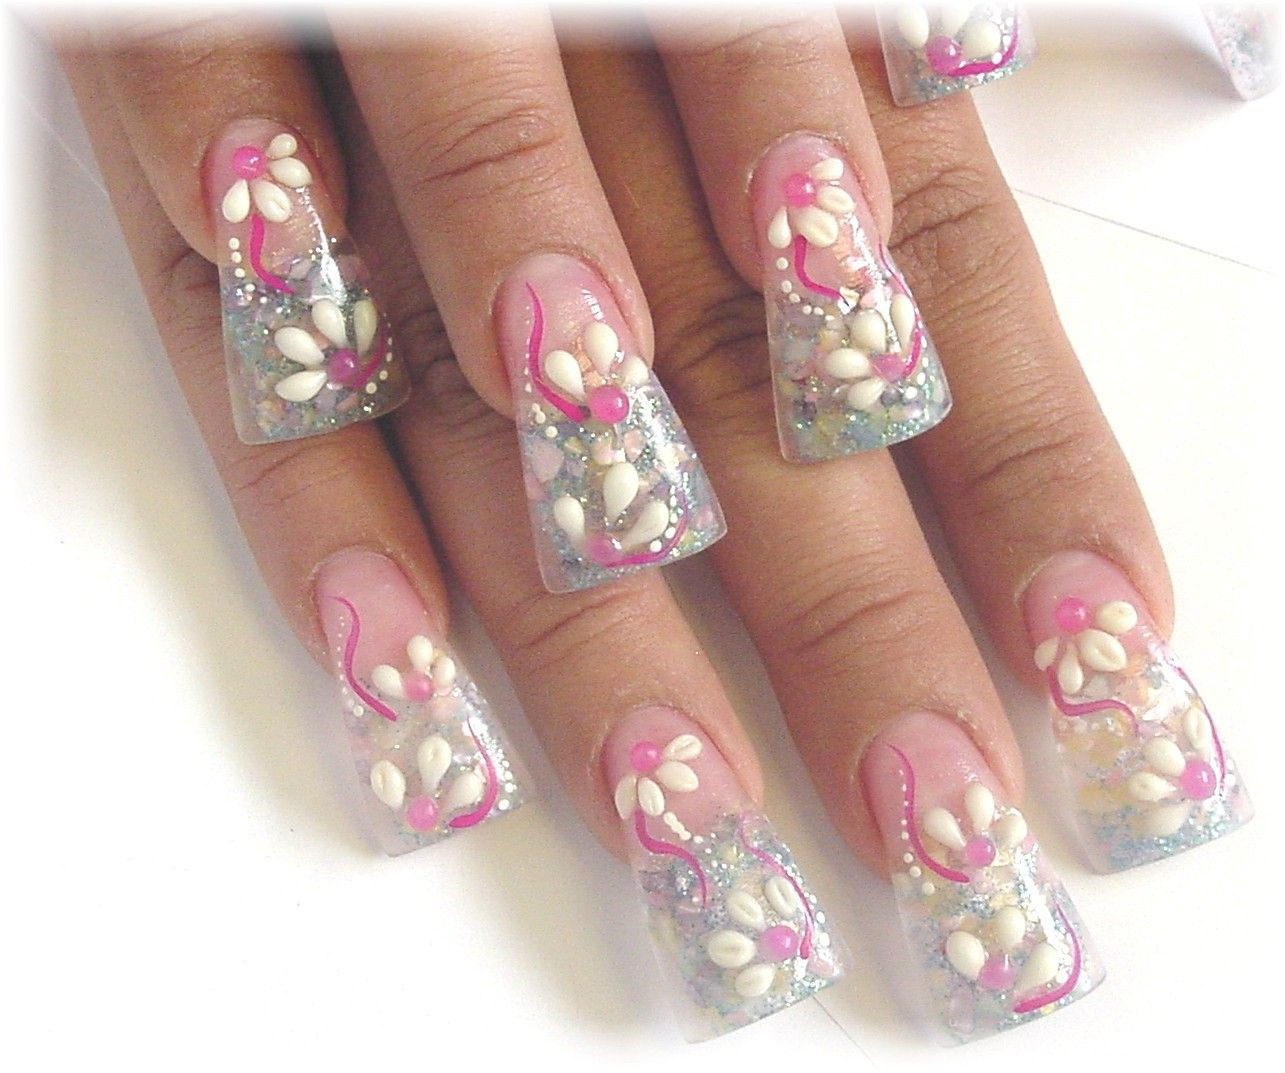 Gel Nails Designs Ideas 20 gel nail art designs ideas trends stickers 2014 gel nails View Original Image Of Awesome Gel Nail Designs Ideas Mania